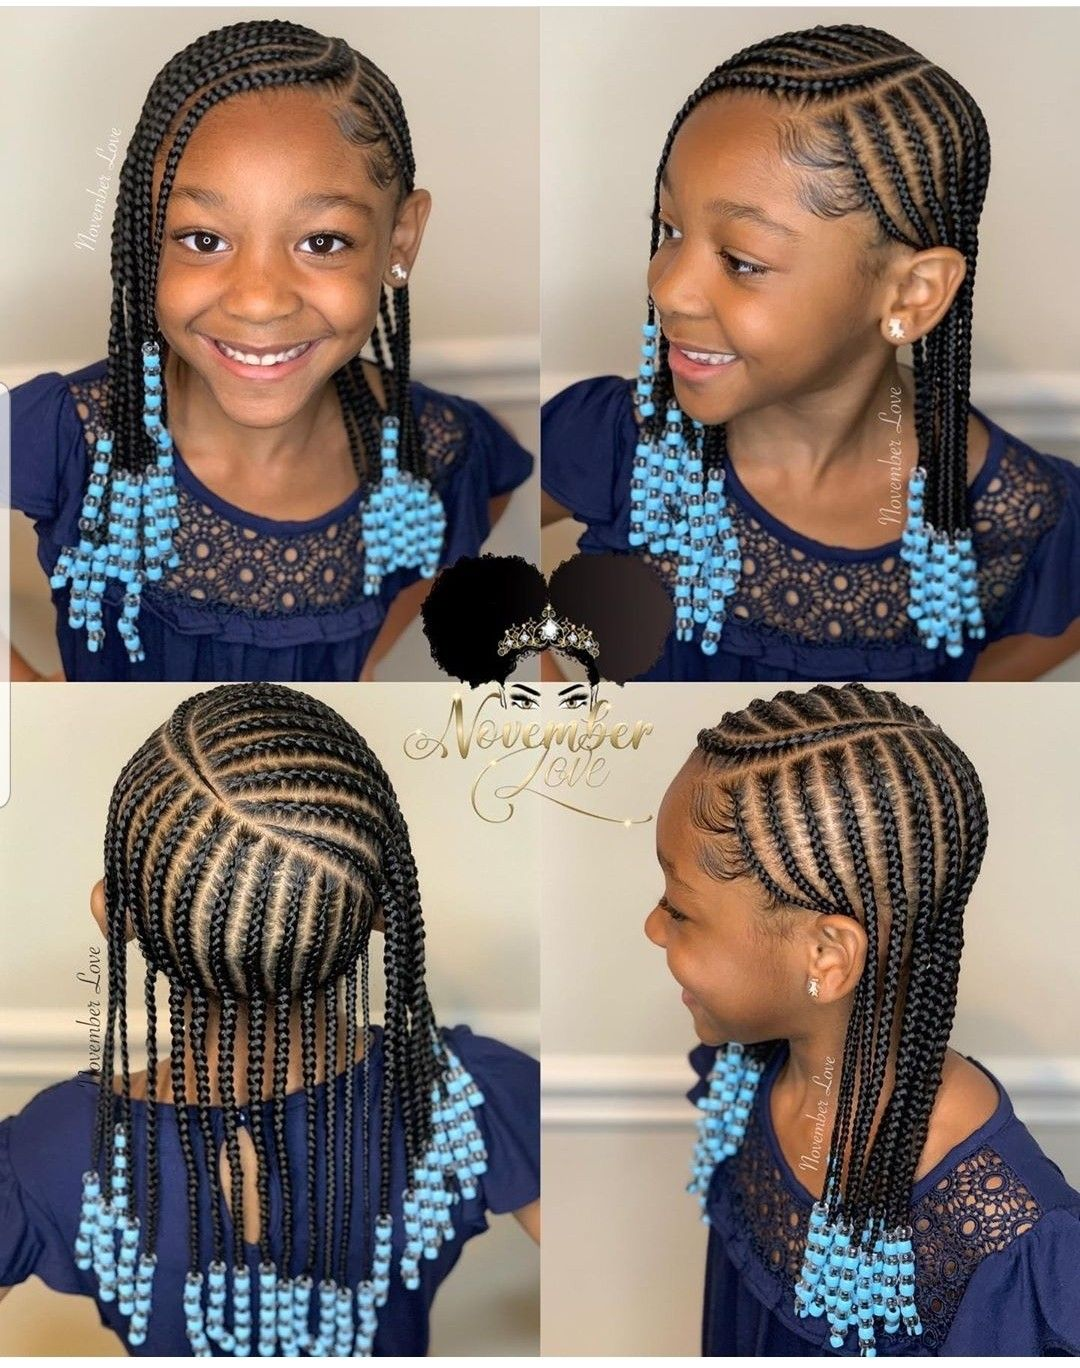 Simple And Cute Kids Hairstyles Braids For Kids Kids Braids With Beads